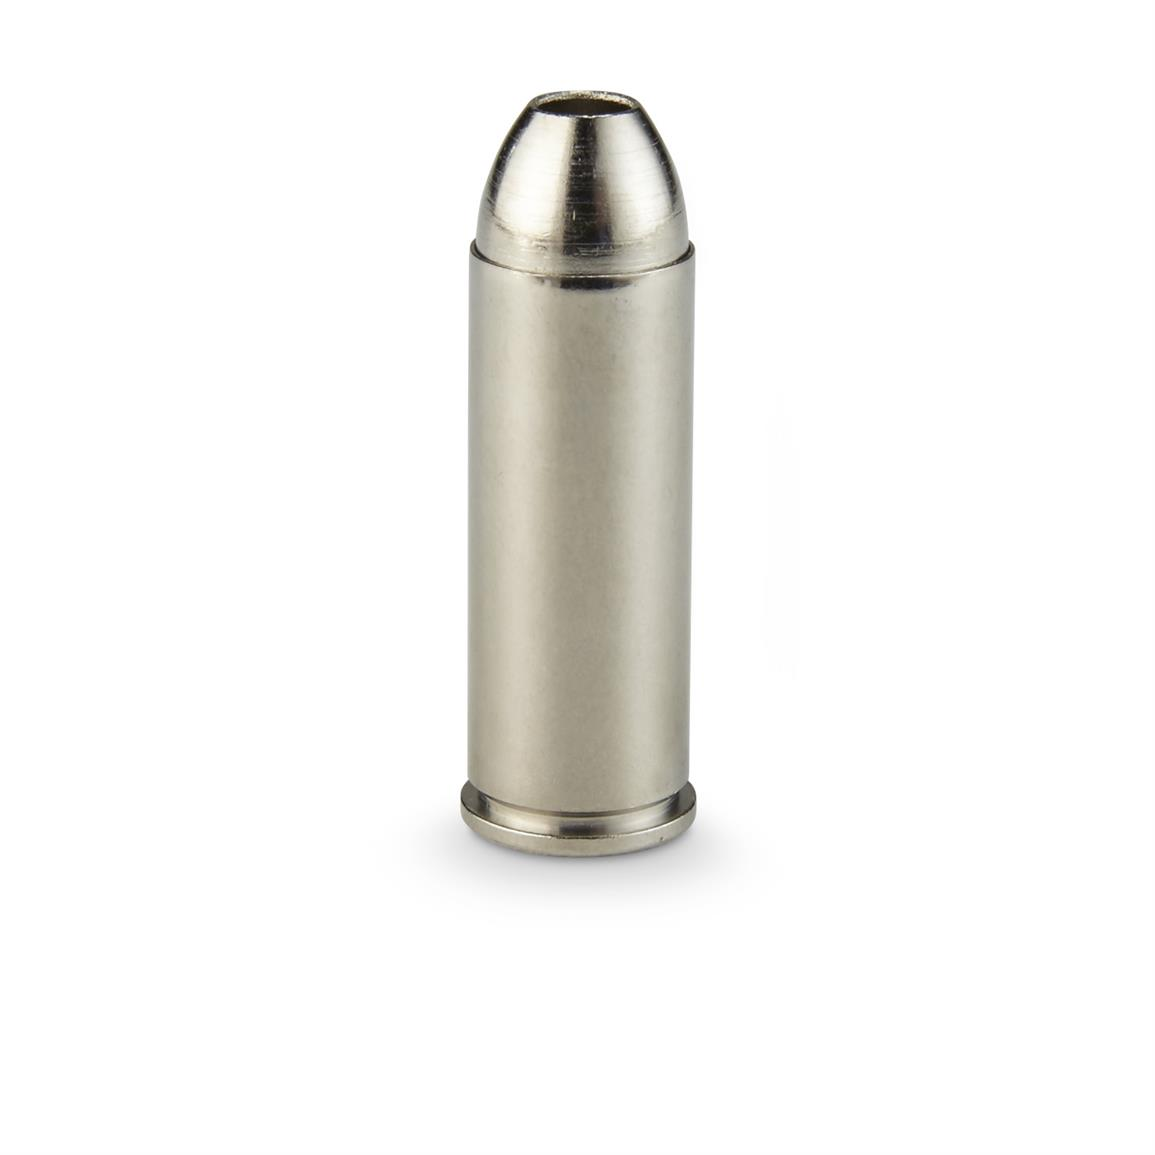 .45 Long Colt 78 Grain Ammo